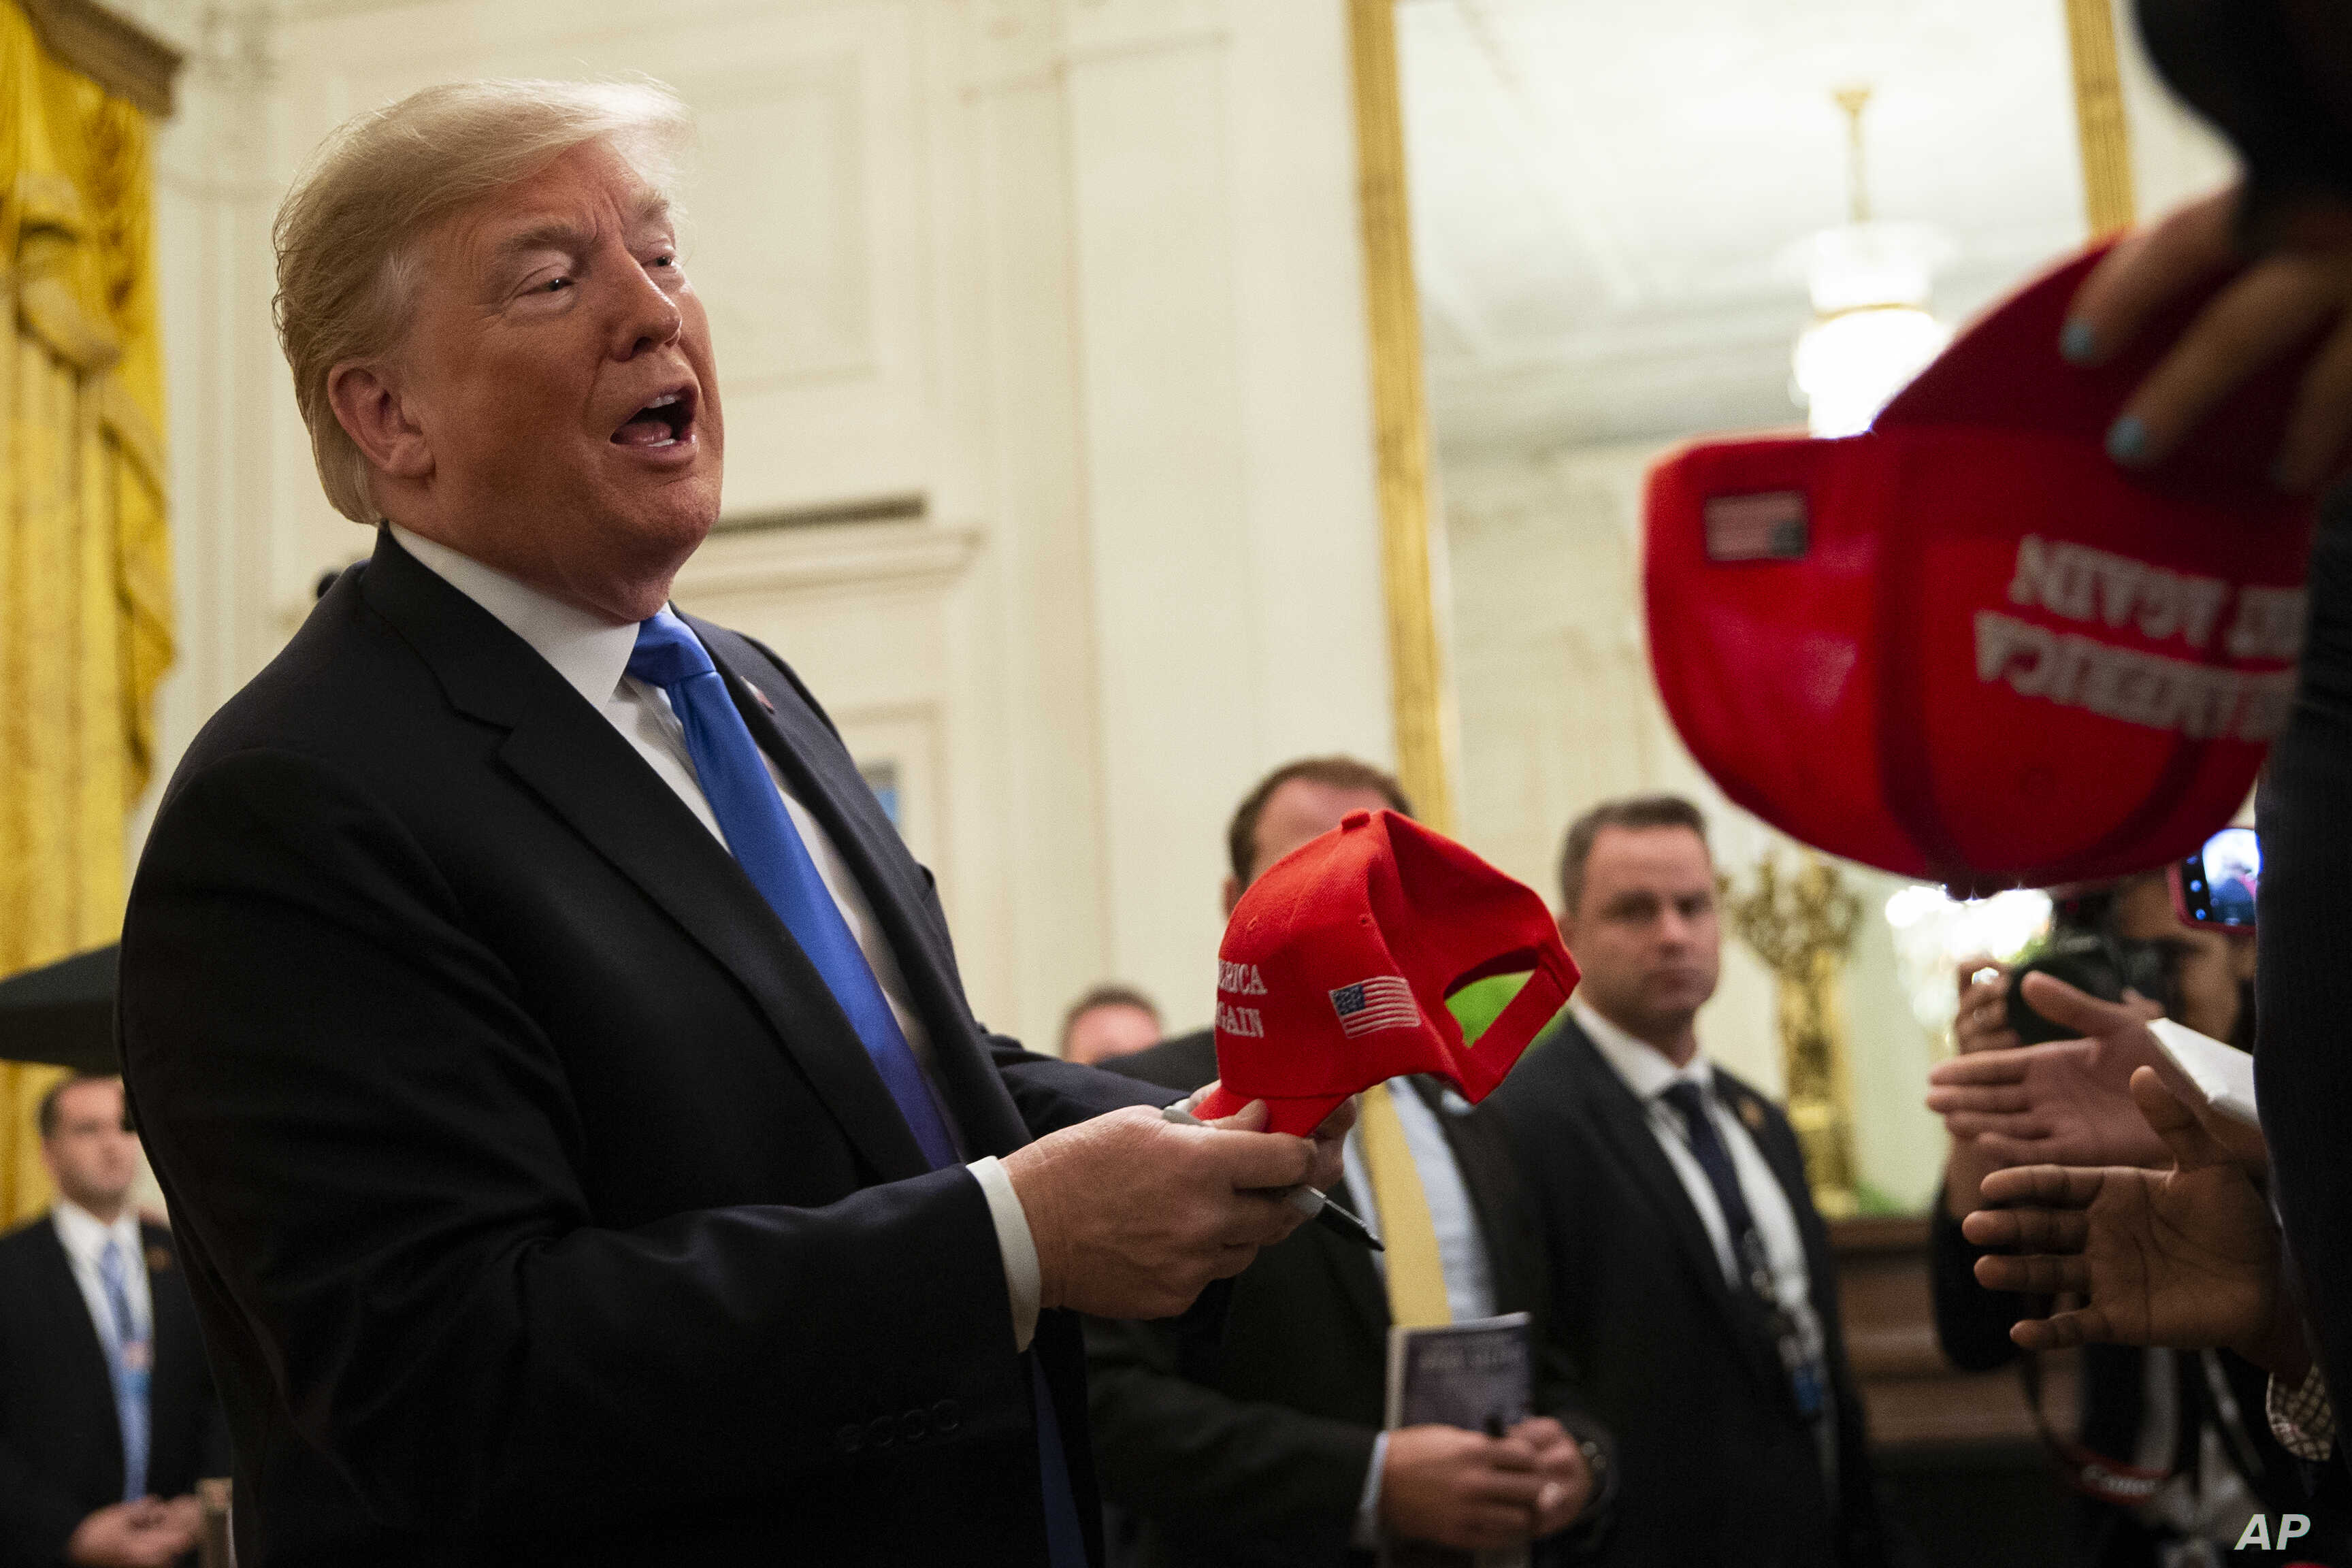 FILE - U.S. President Donald Trump signs Make America Great Again hats at an event at the White House, in Washington, Oct. 26, 2018.